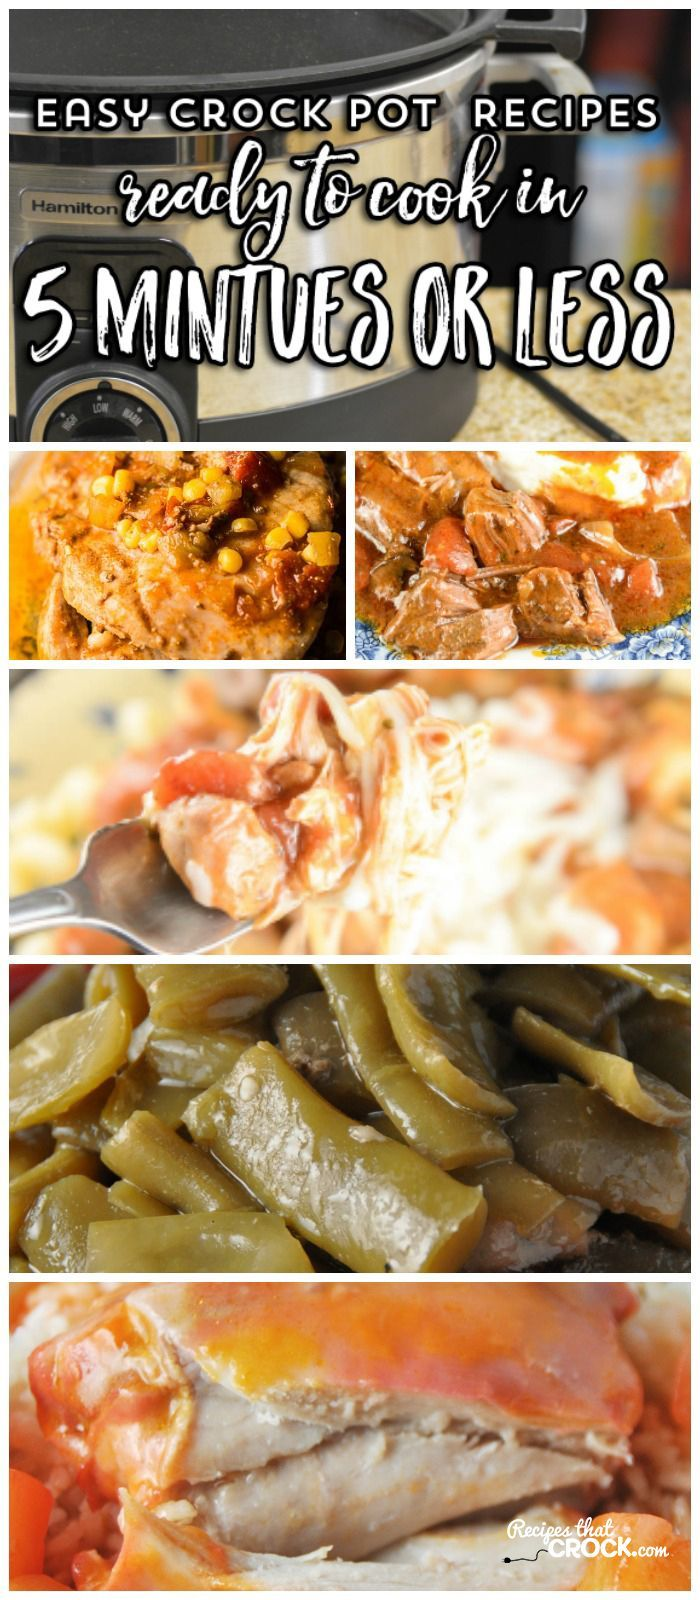 These easy crock pot recipes can be prepared in 5 minutes or less! Fiesta Pork Chops, Italian Beef Roast, One Pot Sausage Dinner, Party Beans, Spanish Rice, Fiesta Mac and Cheese, Crock Pot Green Beans, Slow Cooker Beans and Weenies are all a snap to throw together.These recipes make busy back to school days so much easier and are a great way to use up your pantry canned food staples. #Ad #CansGetYouCooking